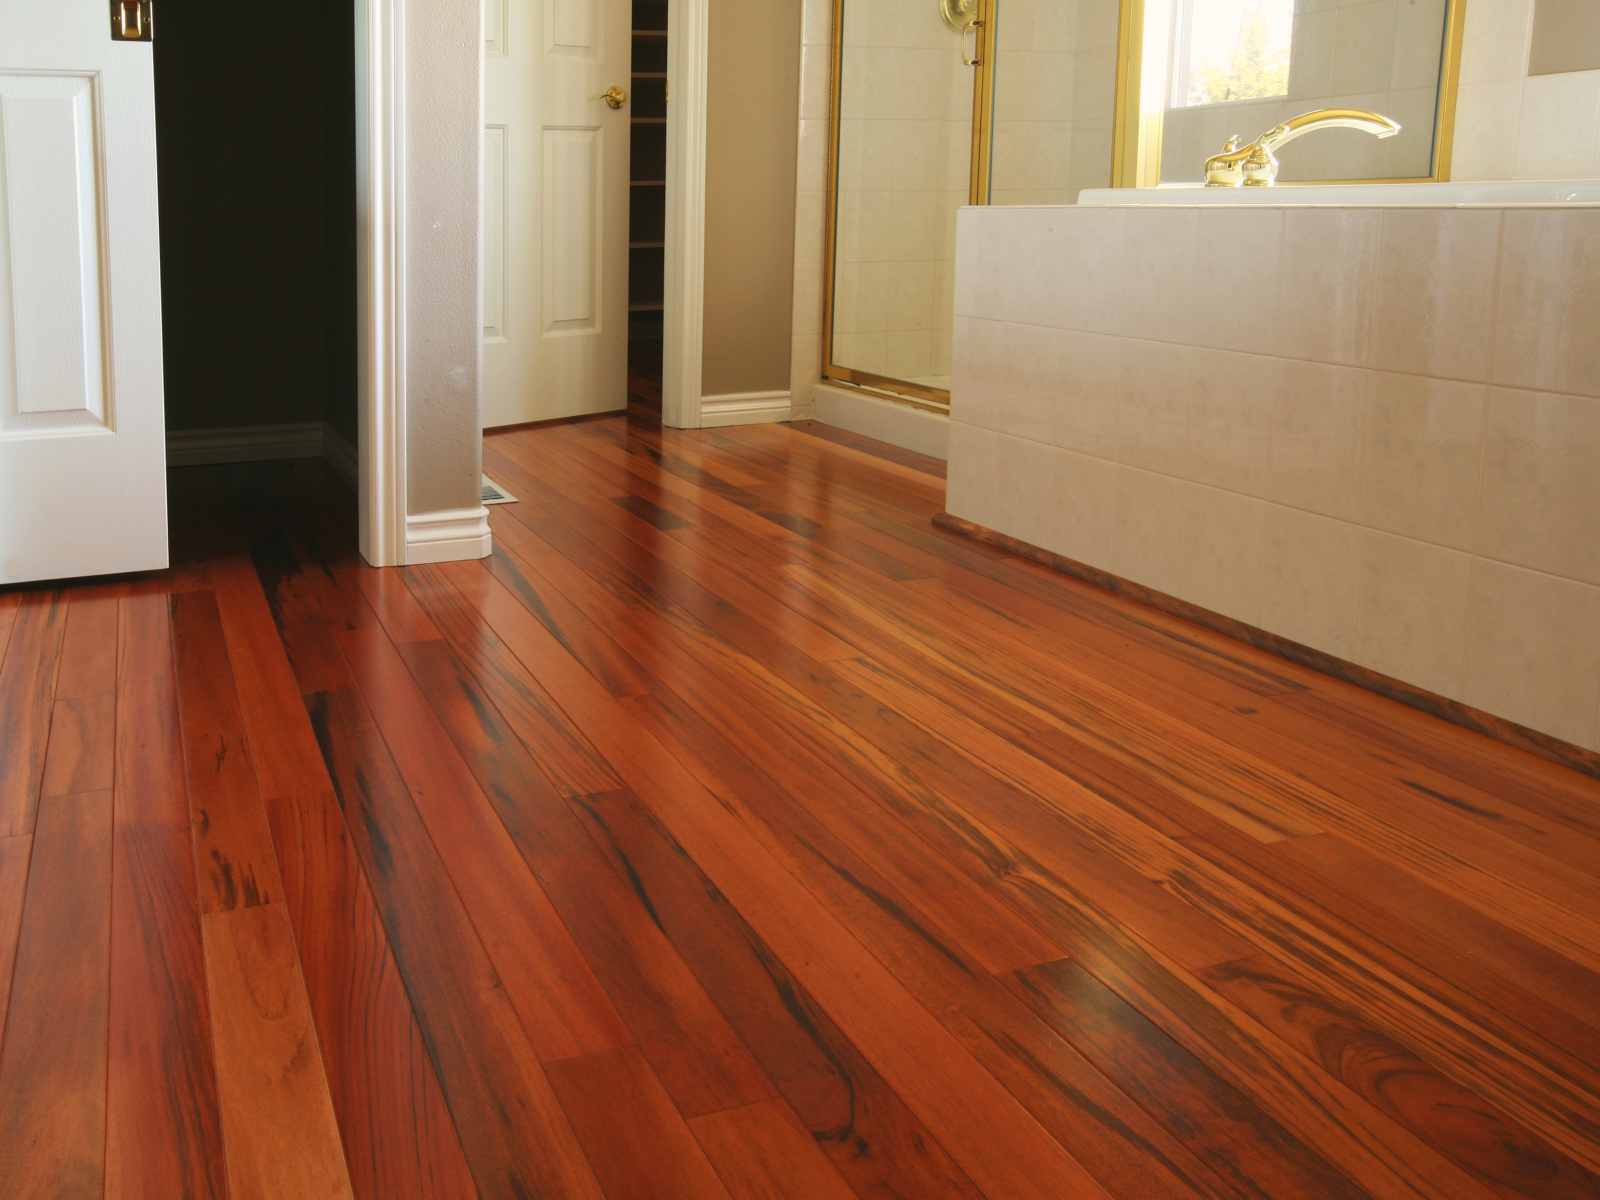 Bamboo flooring eco friendly flooring for your home for Laminate wood flooring ideas